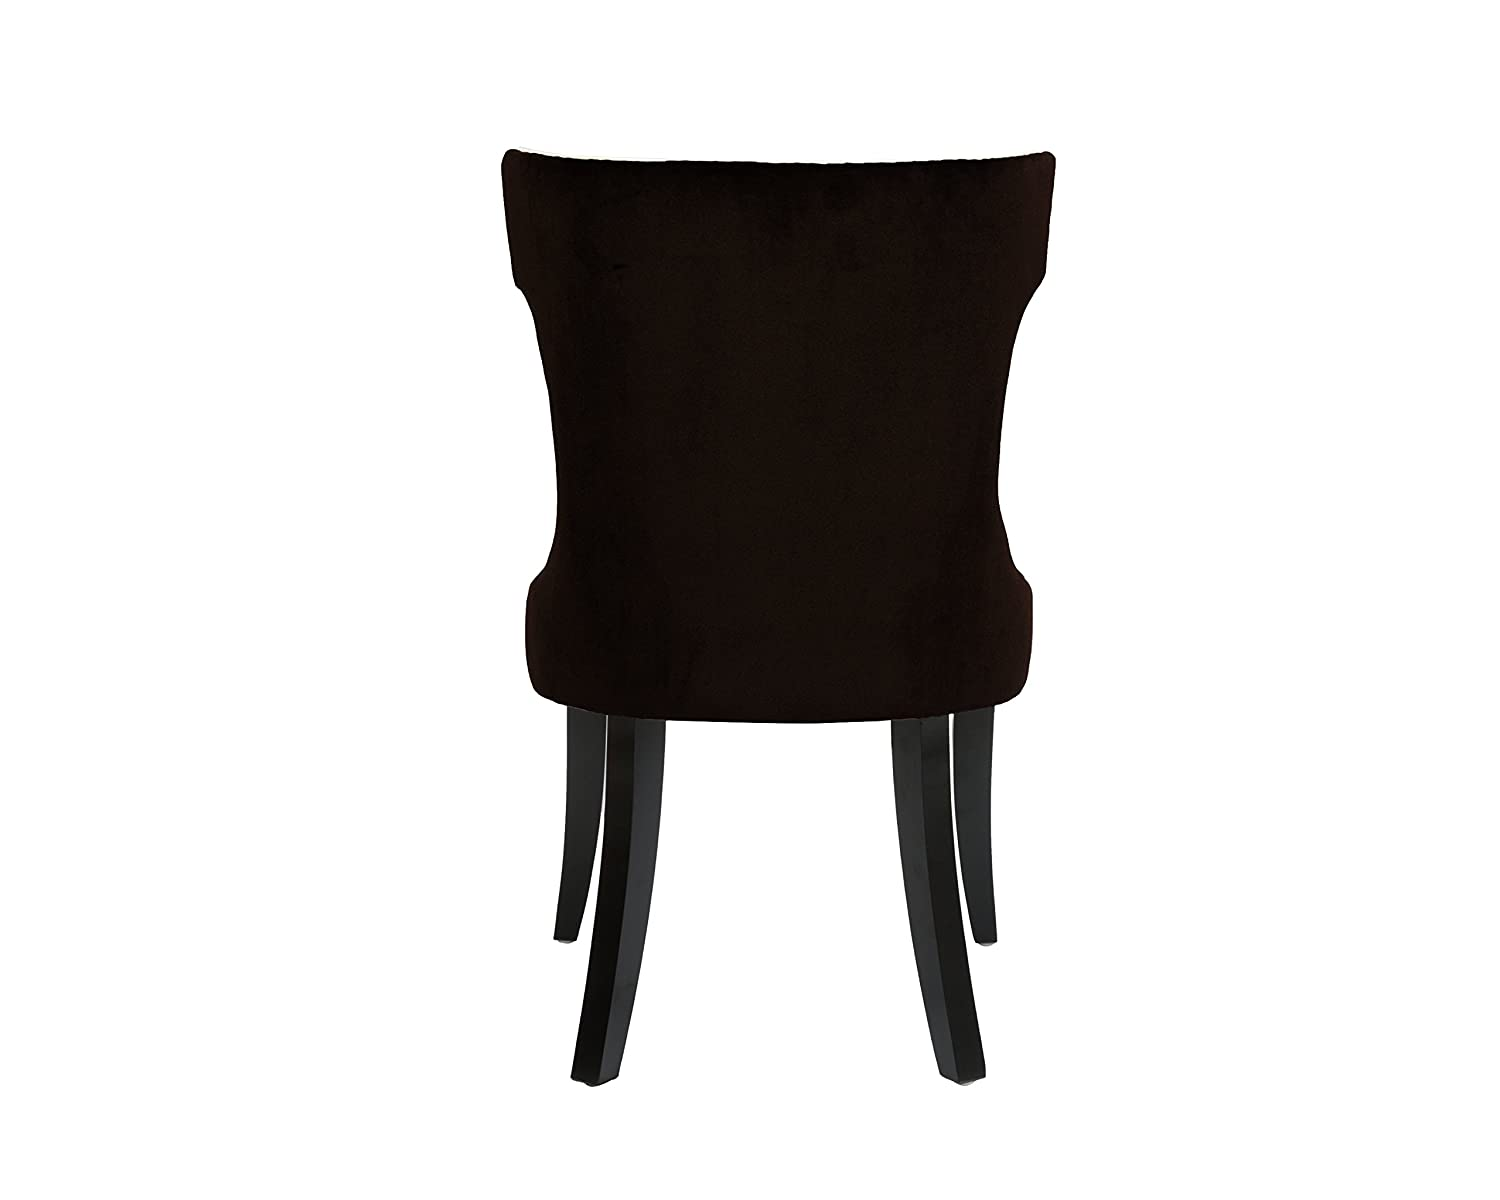 2pc Set FDC2718-AN Brown//Light Beige Iconic Home Conrad Dining Side Chair Velvet PU Leather Espresso Wood Frame Modern Transitional